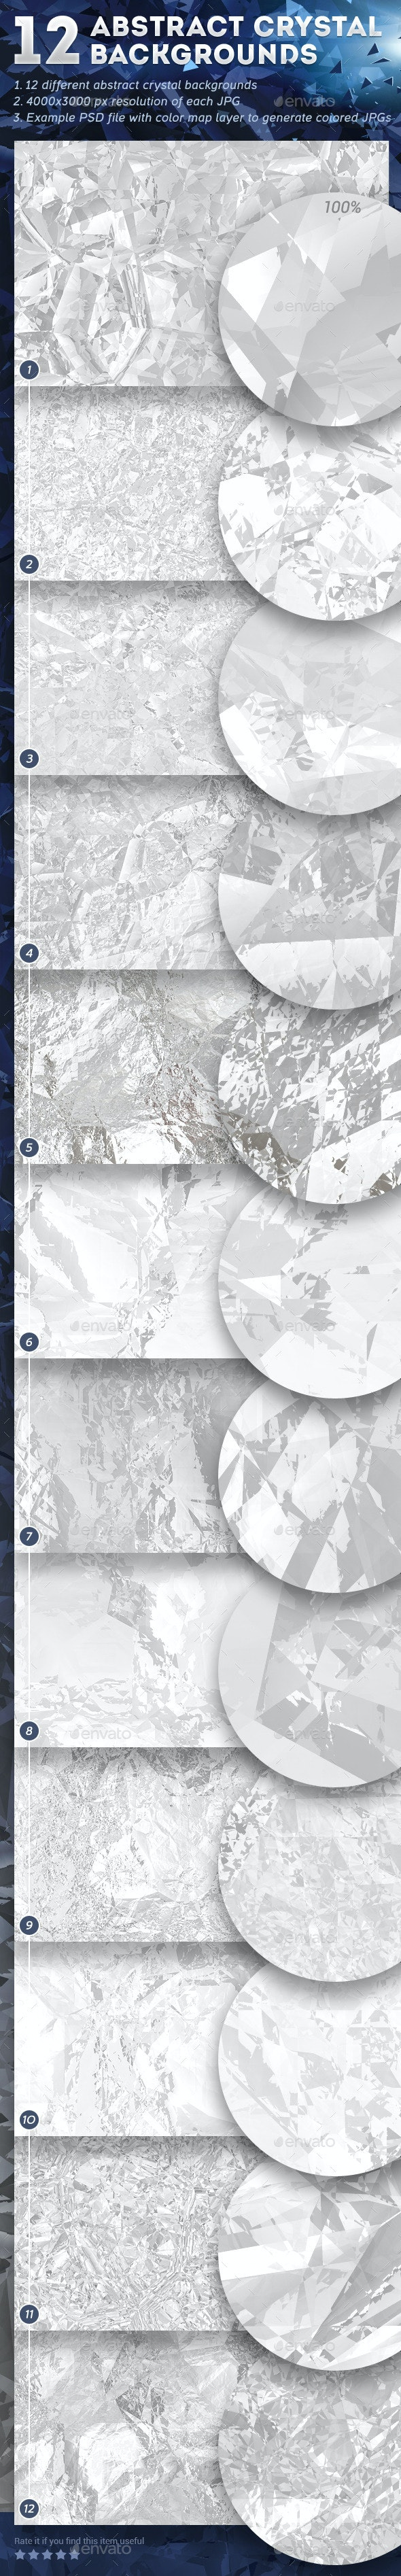 12 Abstract Crystal Backgrounds - Abstract Backgrounds